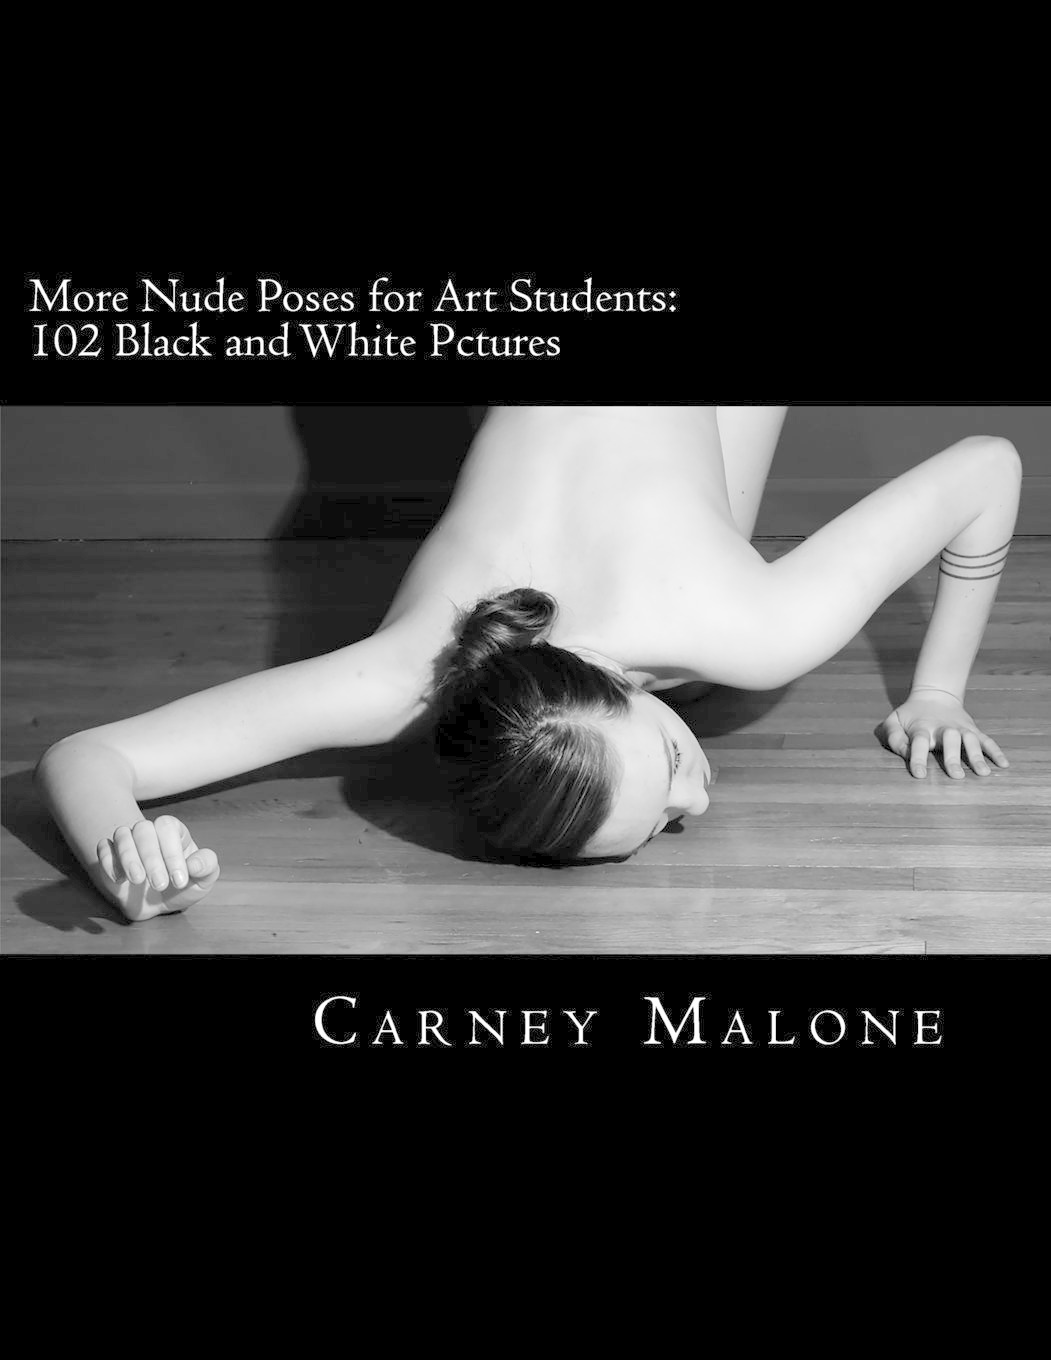 More Nude Poses for Art Students: 102 Black and White PicturesFor Art Students: 113 Black and White Pictures